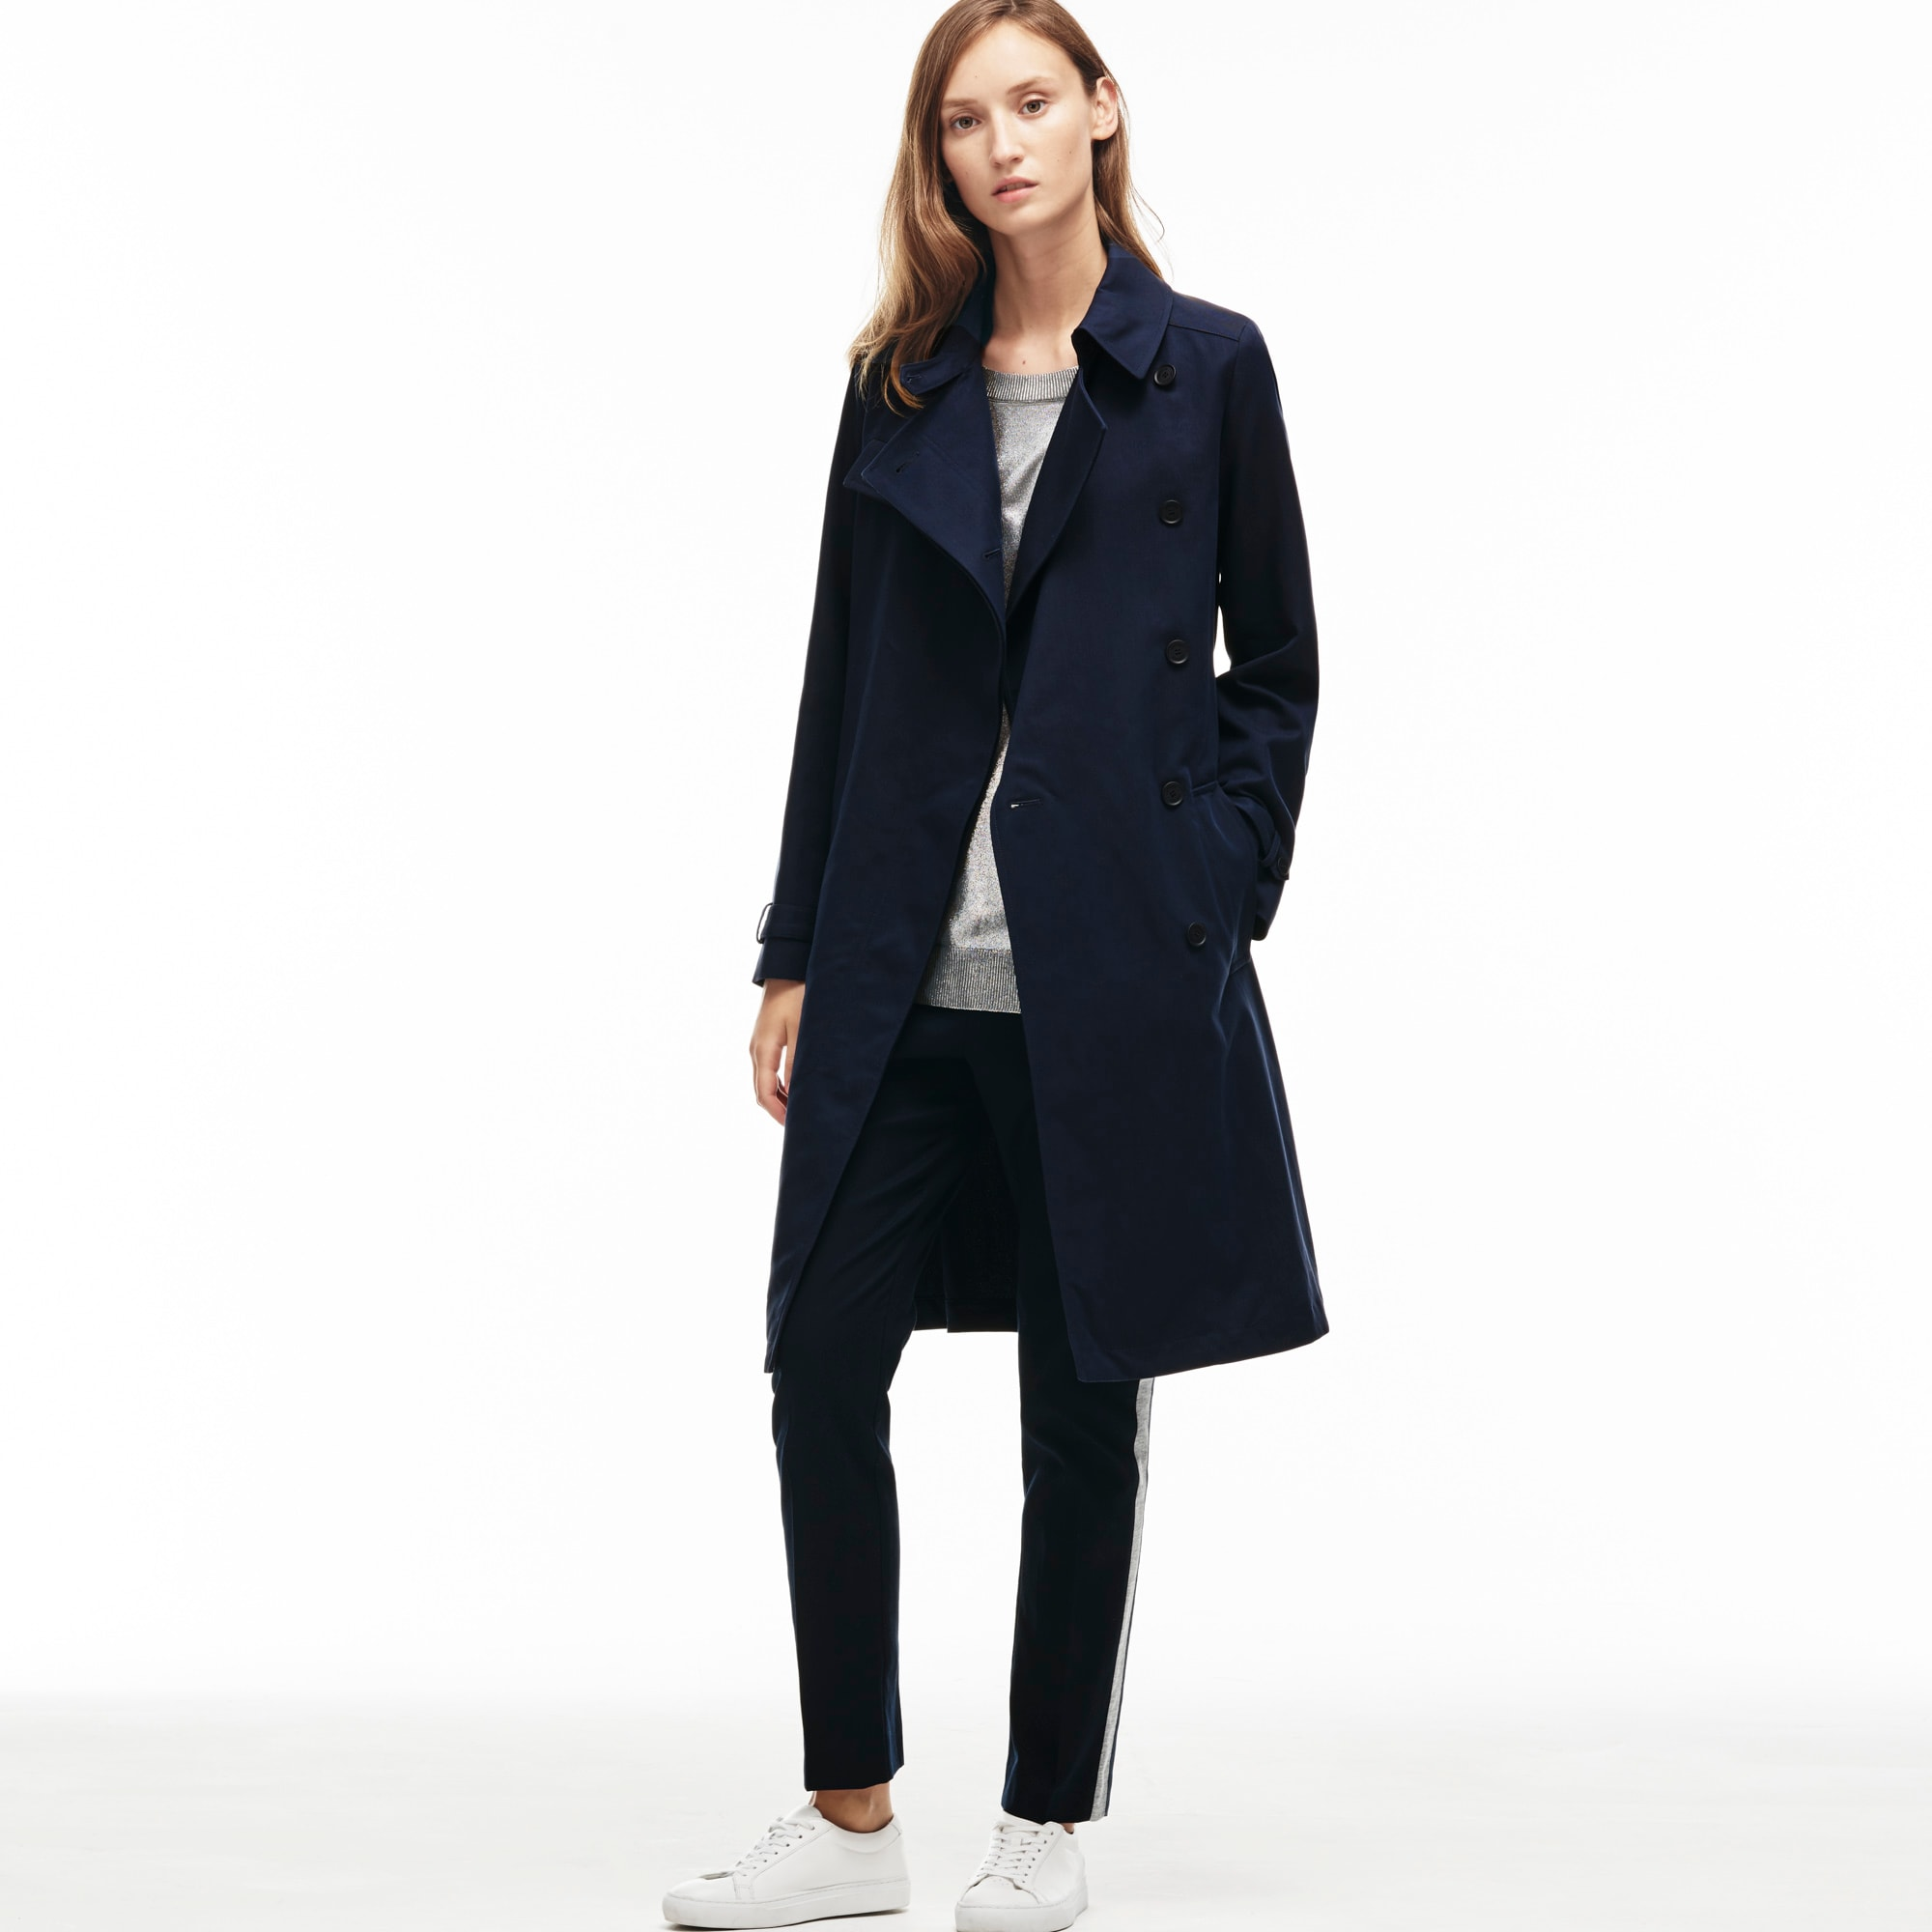 Jackets and Coats | Women's Outerwear | LACOSTE